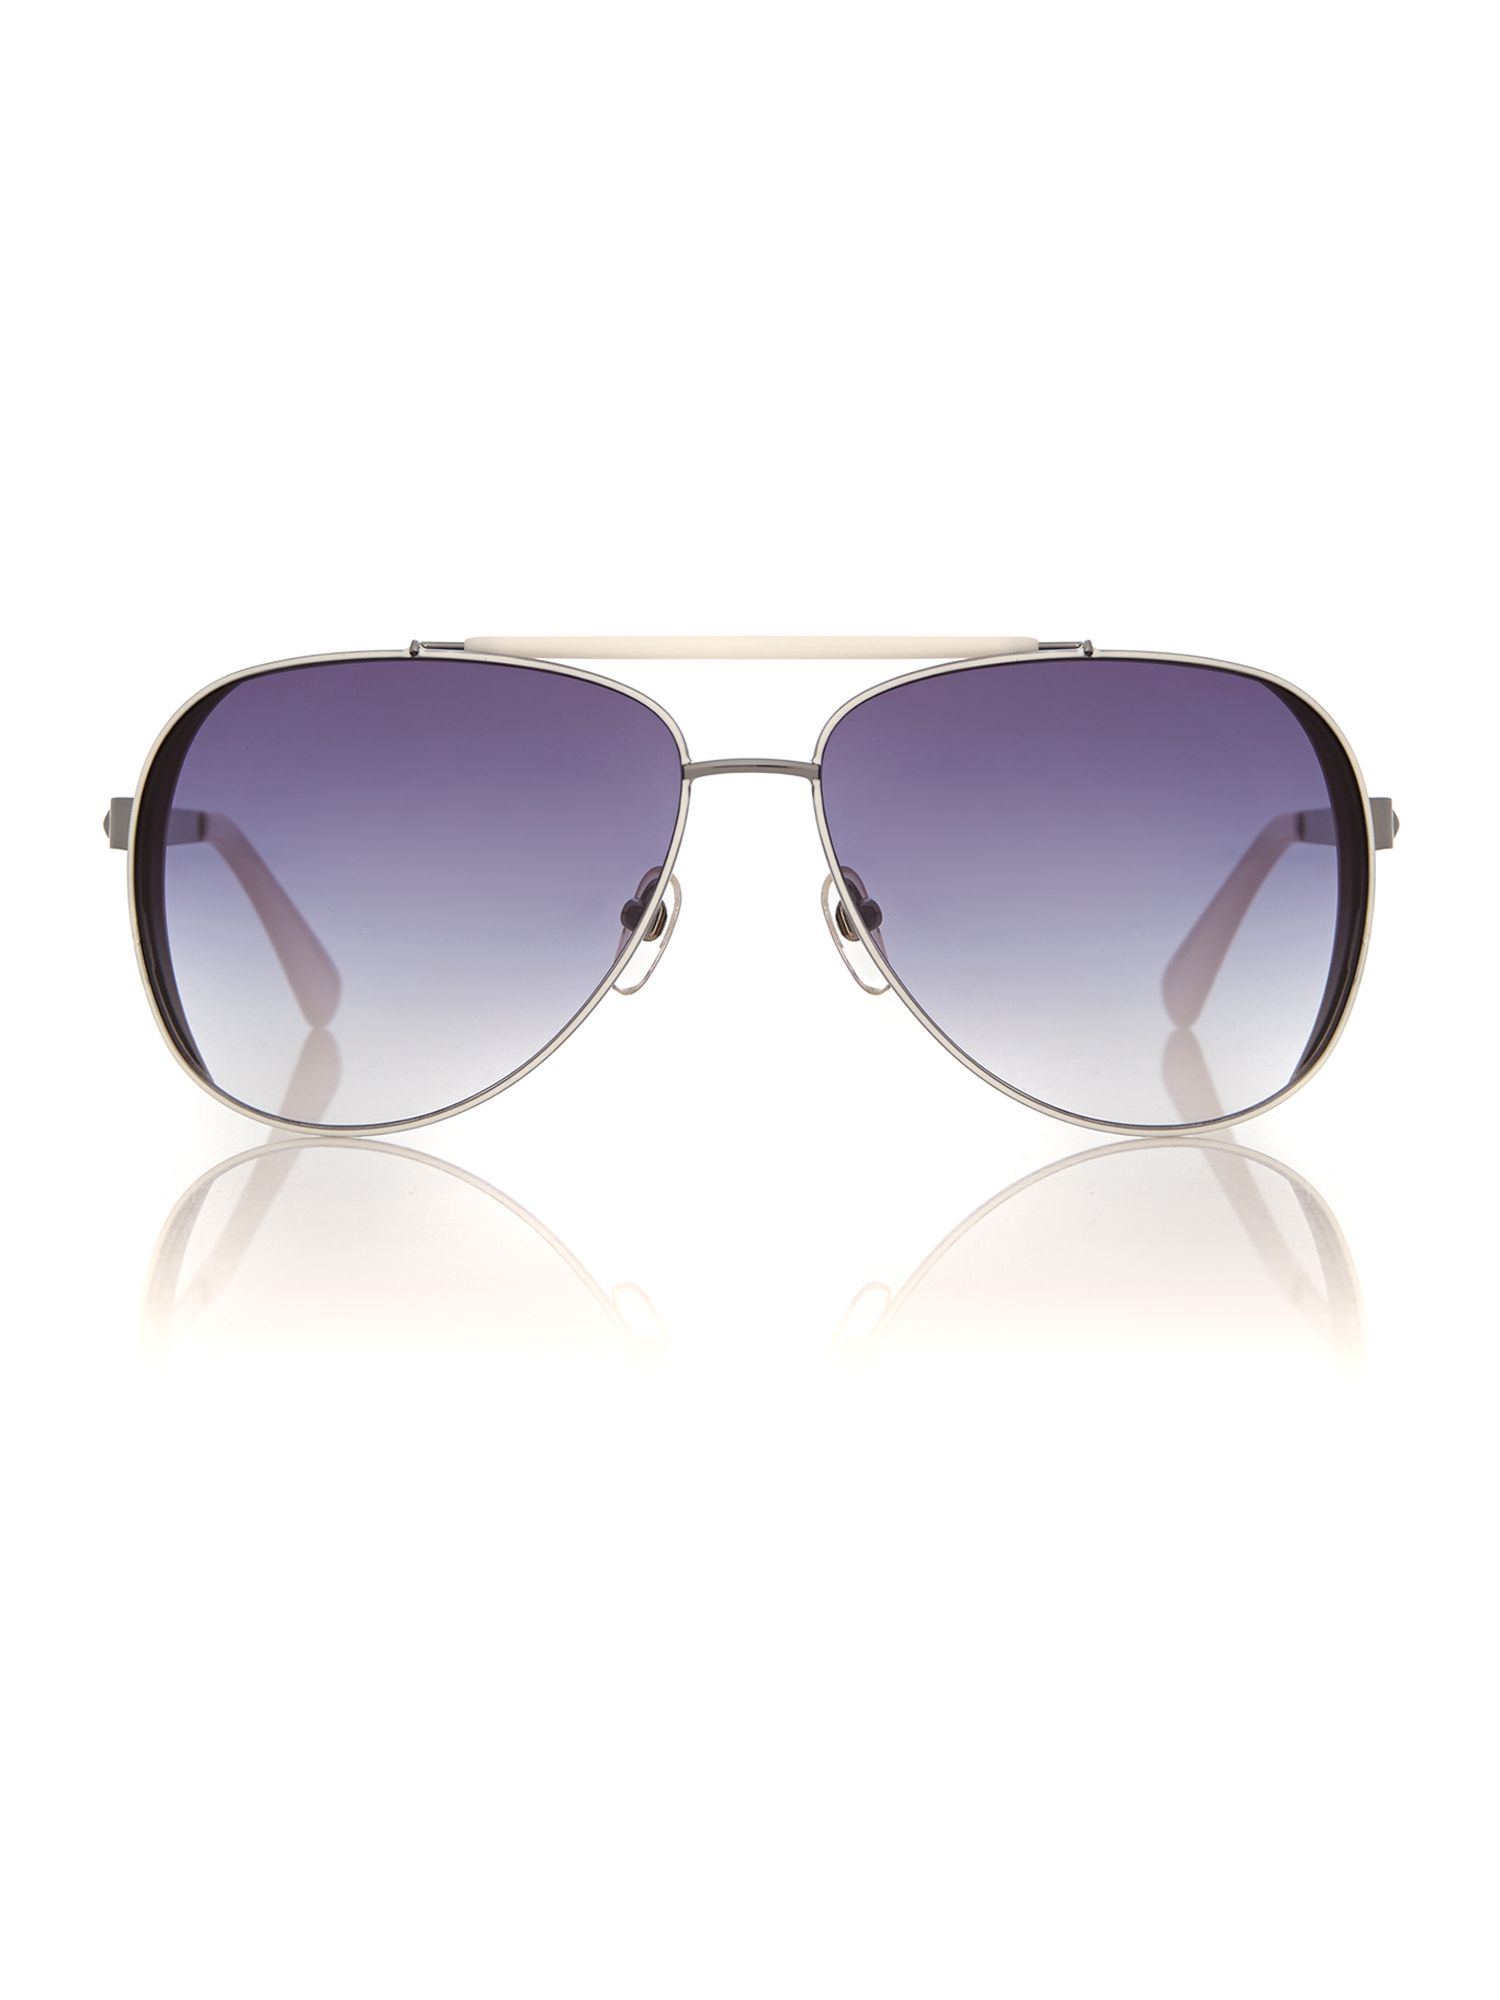 Women grey grad pilot sunglasses